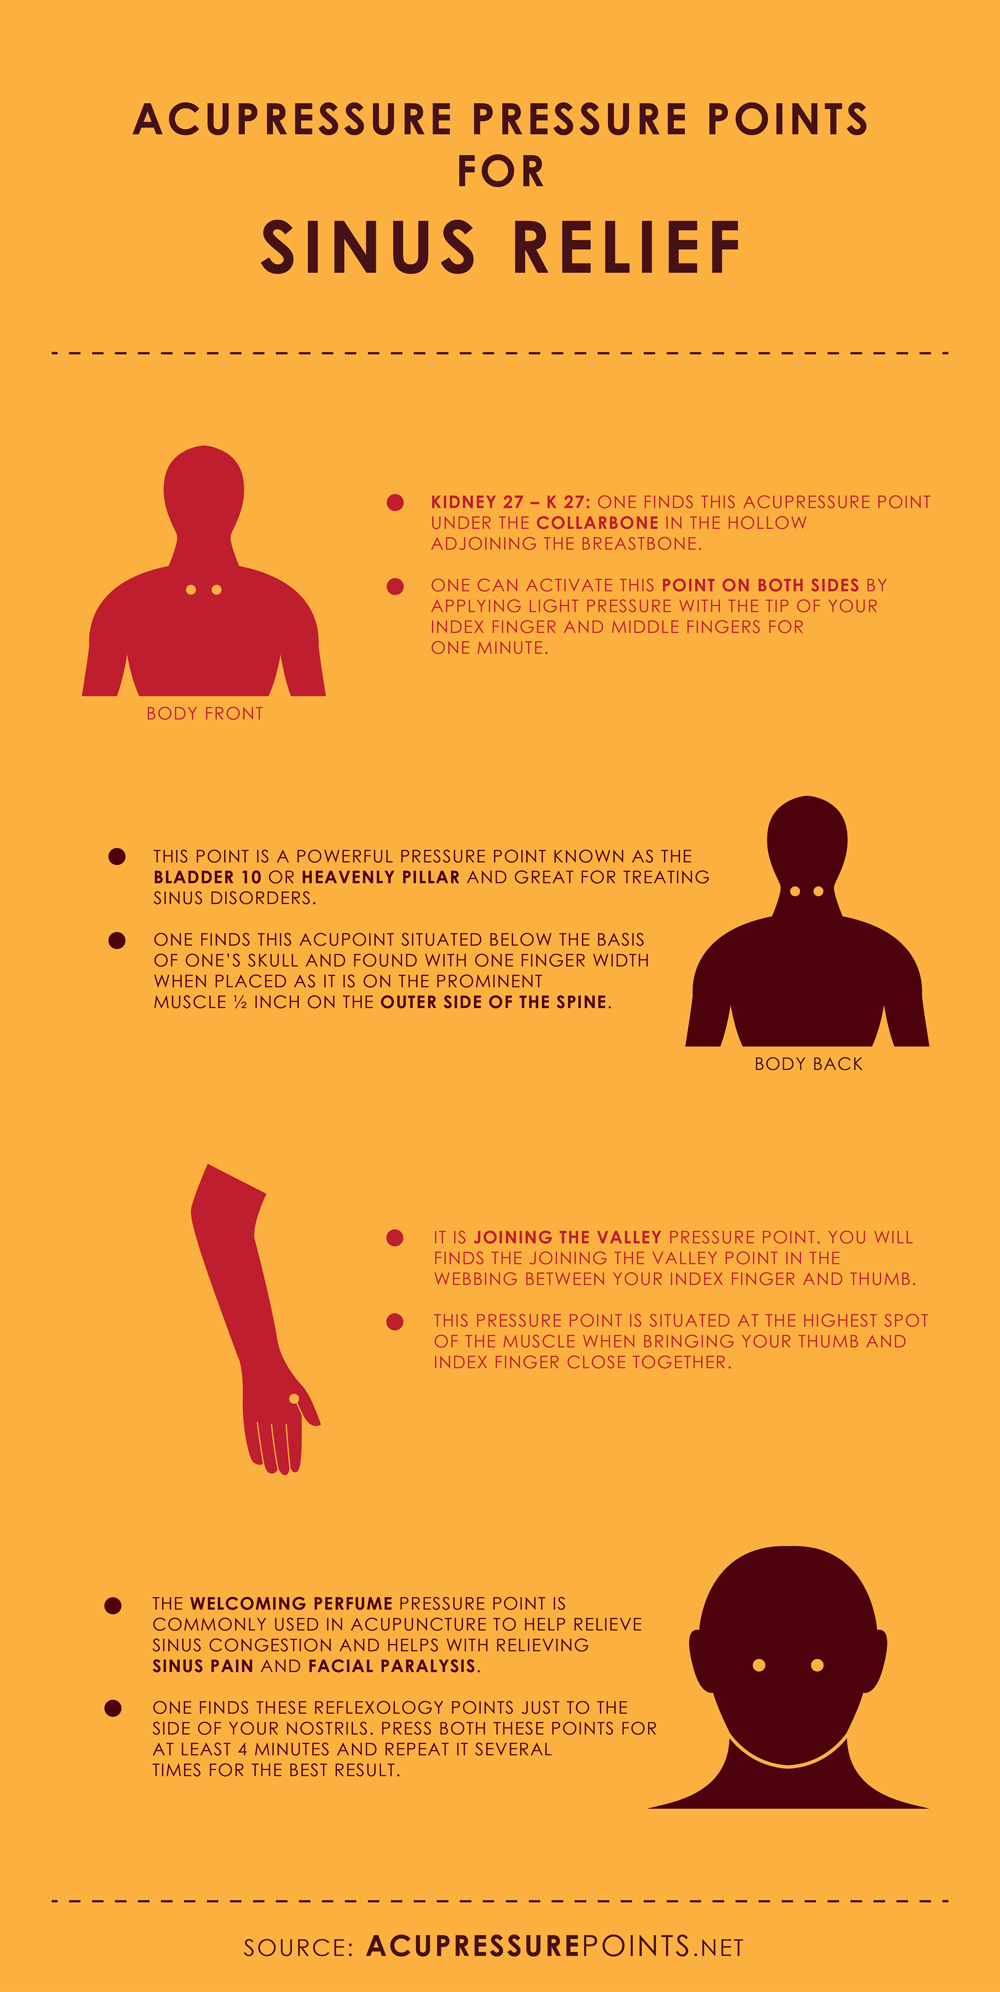 Acupressure Points for Sinus Relief Infographic